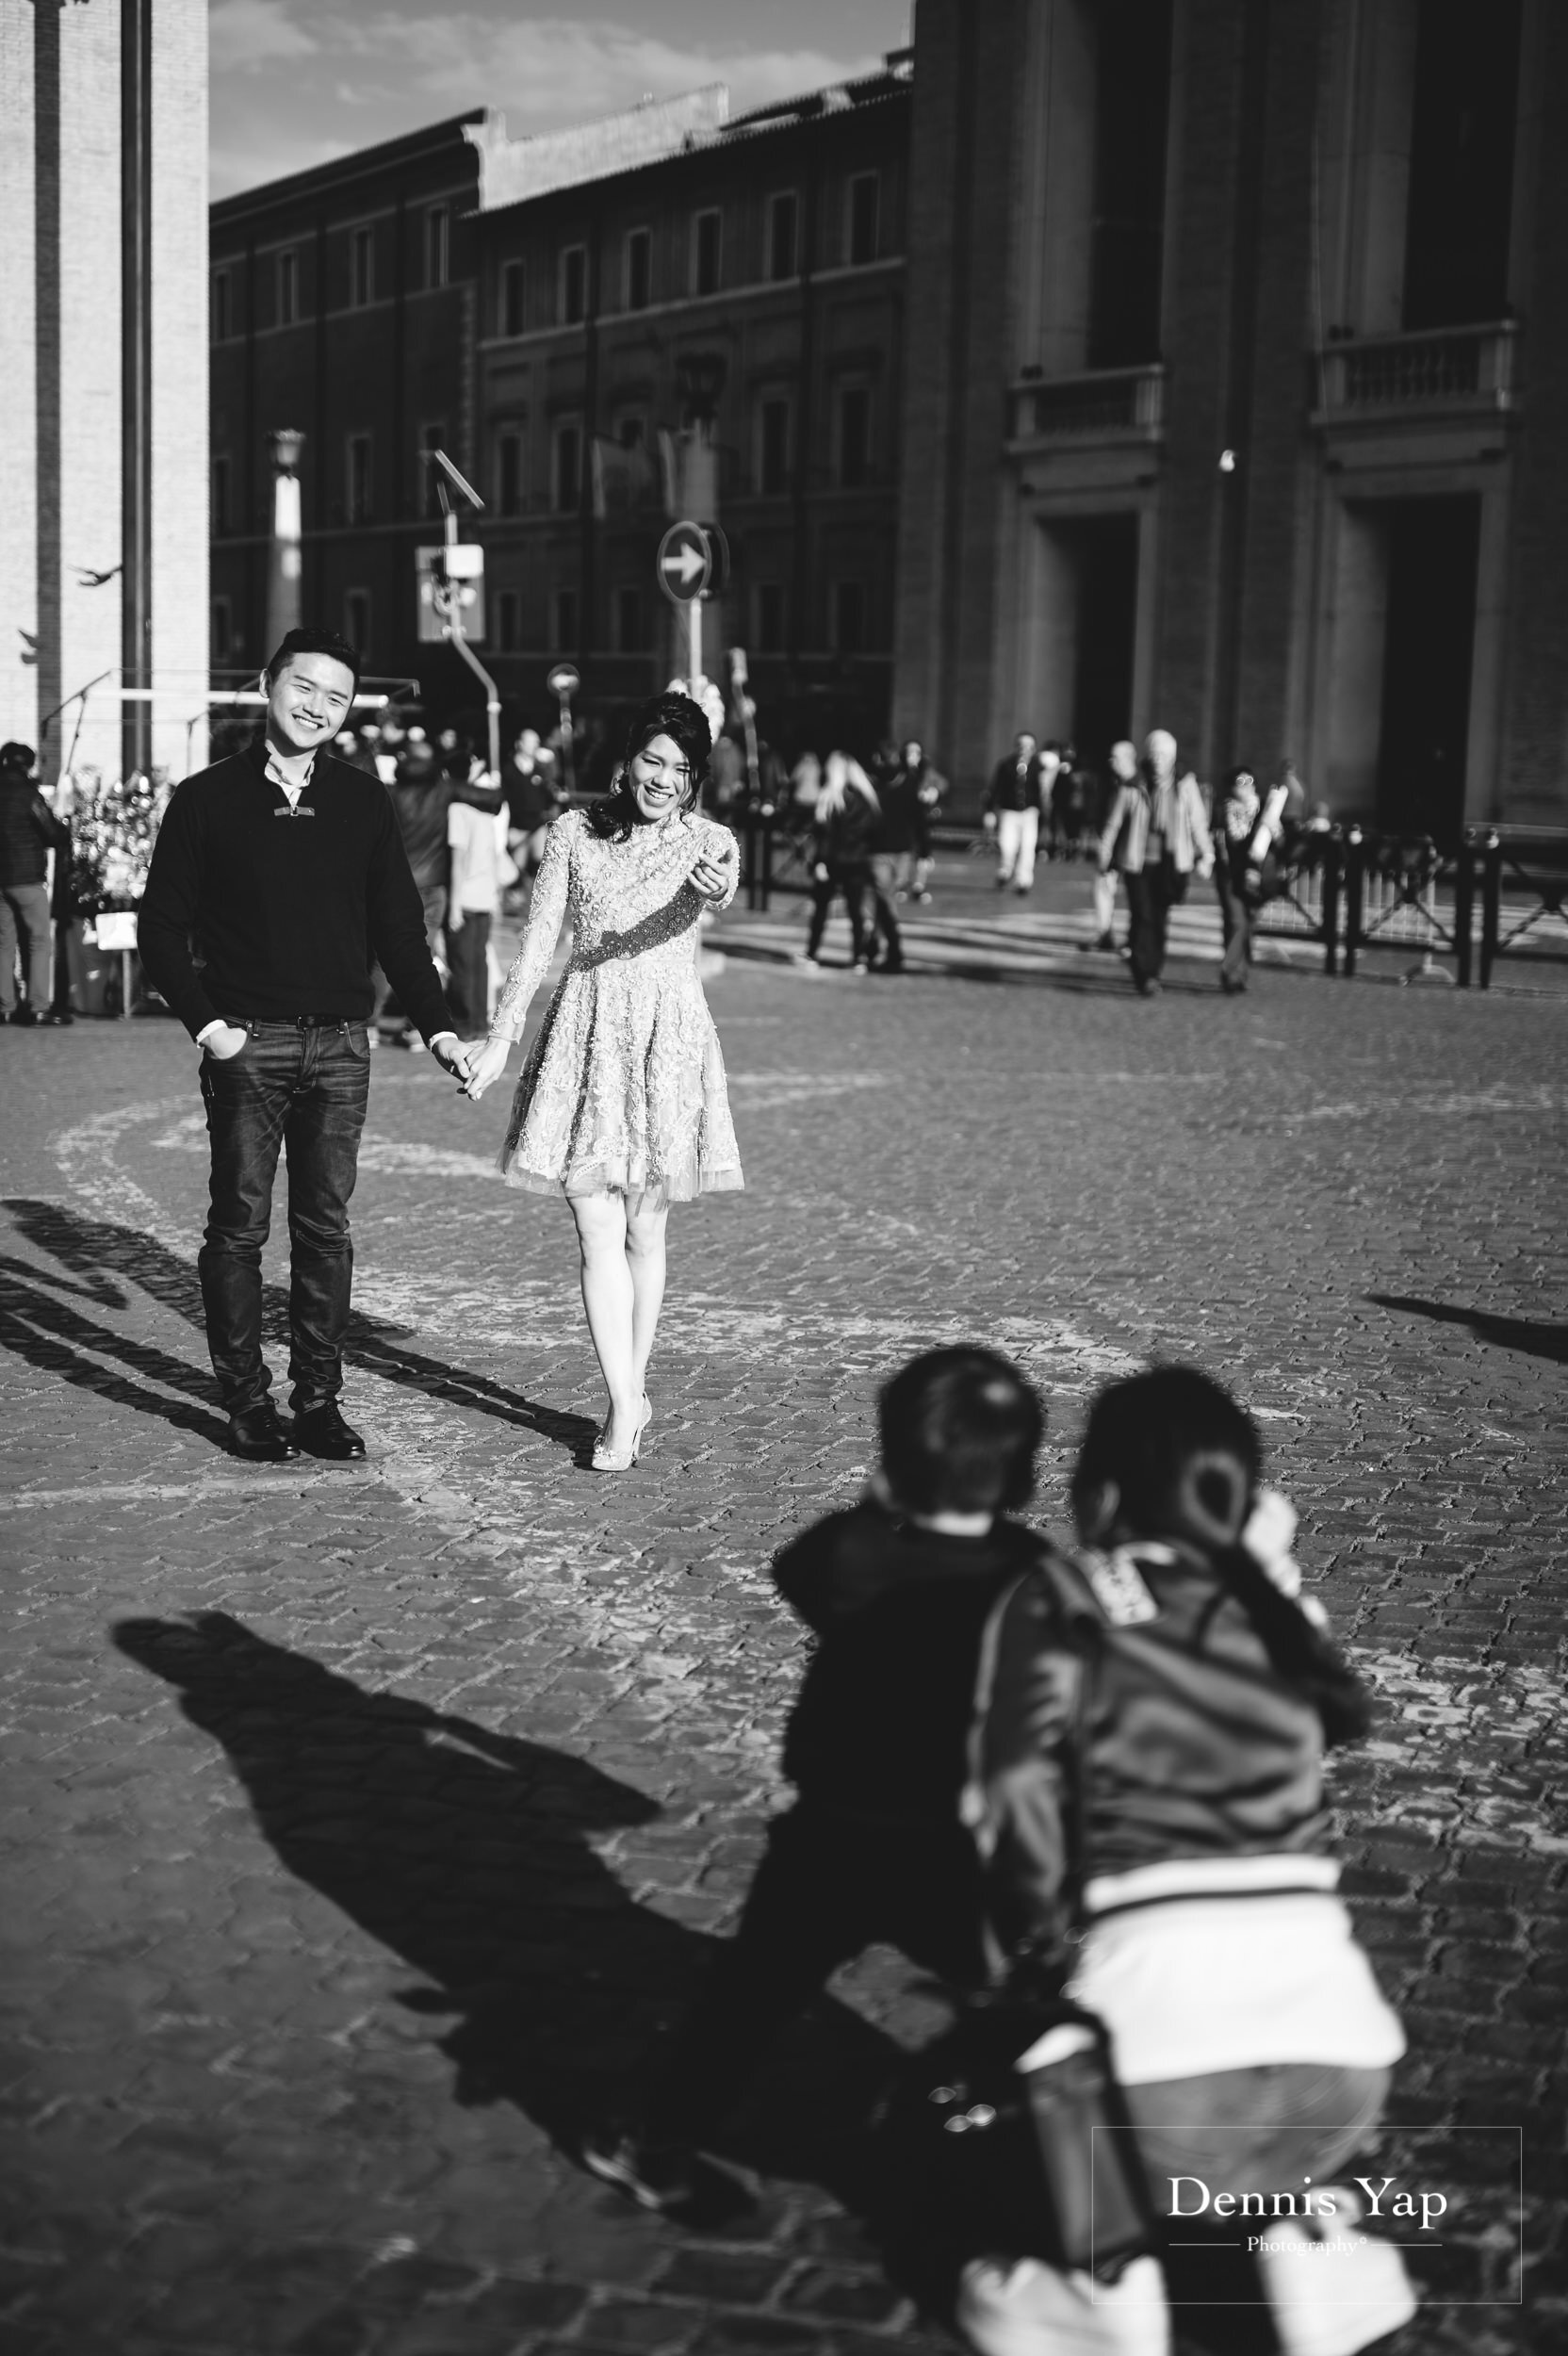 alex chloe pre wedding rome italy dennis yap photography overseas portrait classic beloved-126.jpg